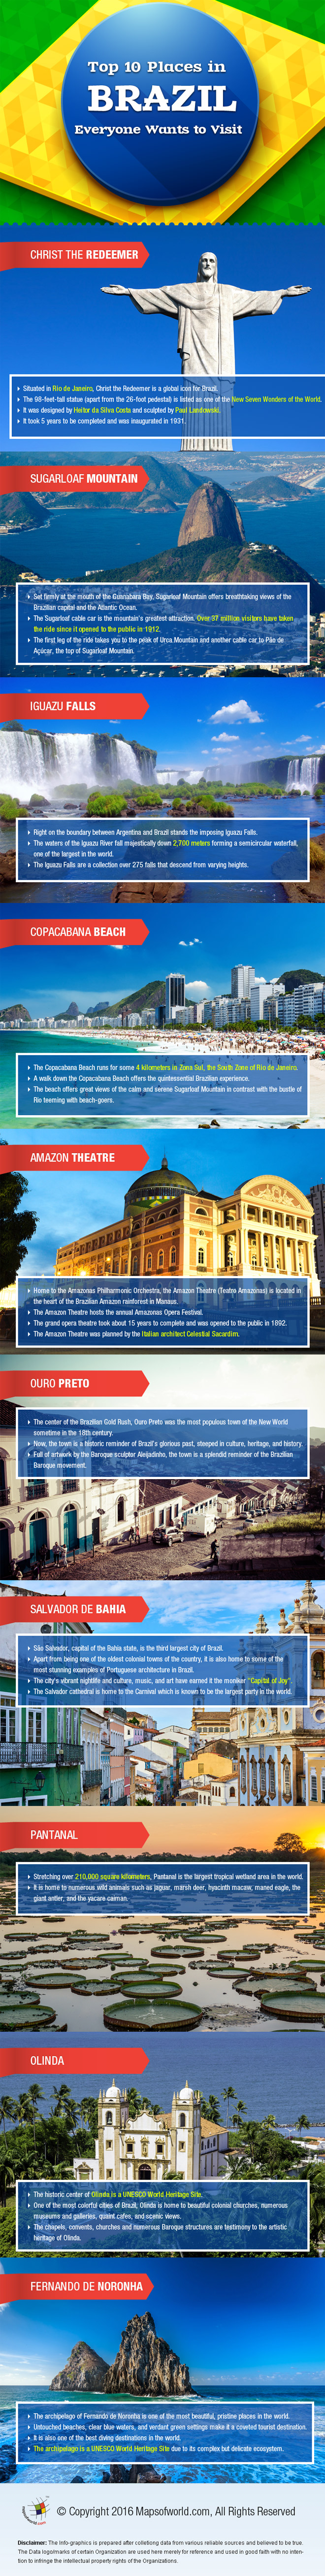 Infographic on Top 10 Places in Brazil Everyone Wants to Visit